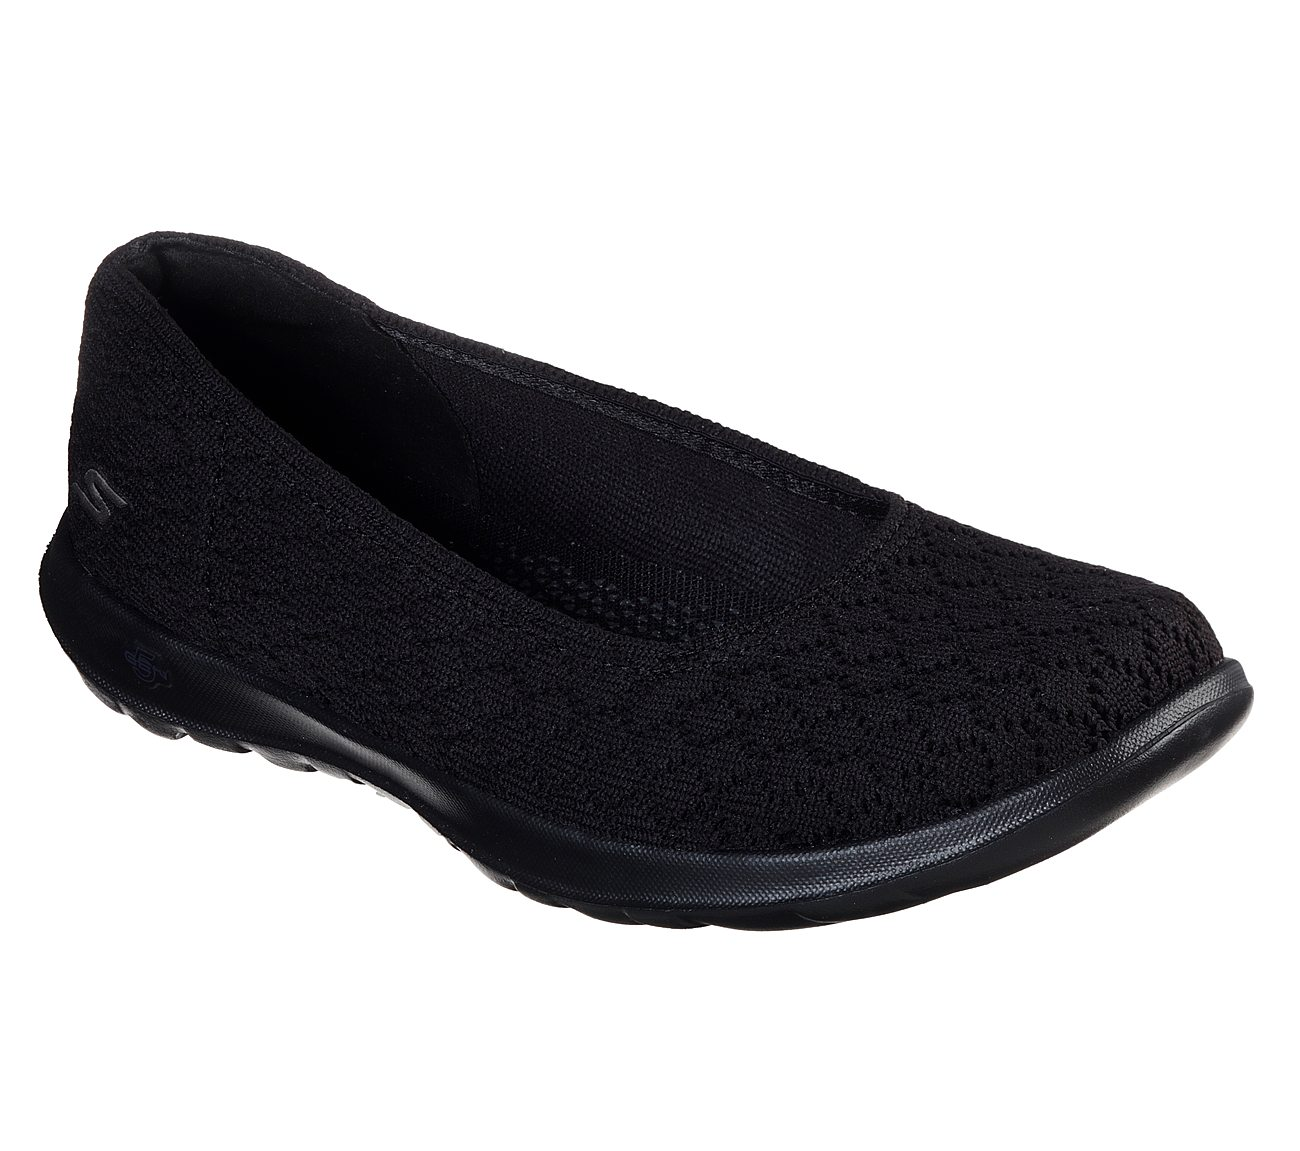 Skechers GOwalk Lite - Loveable